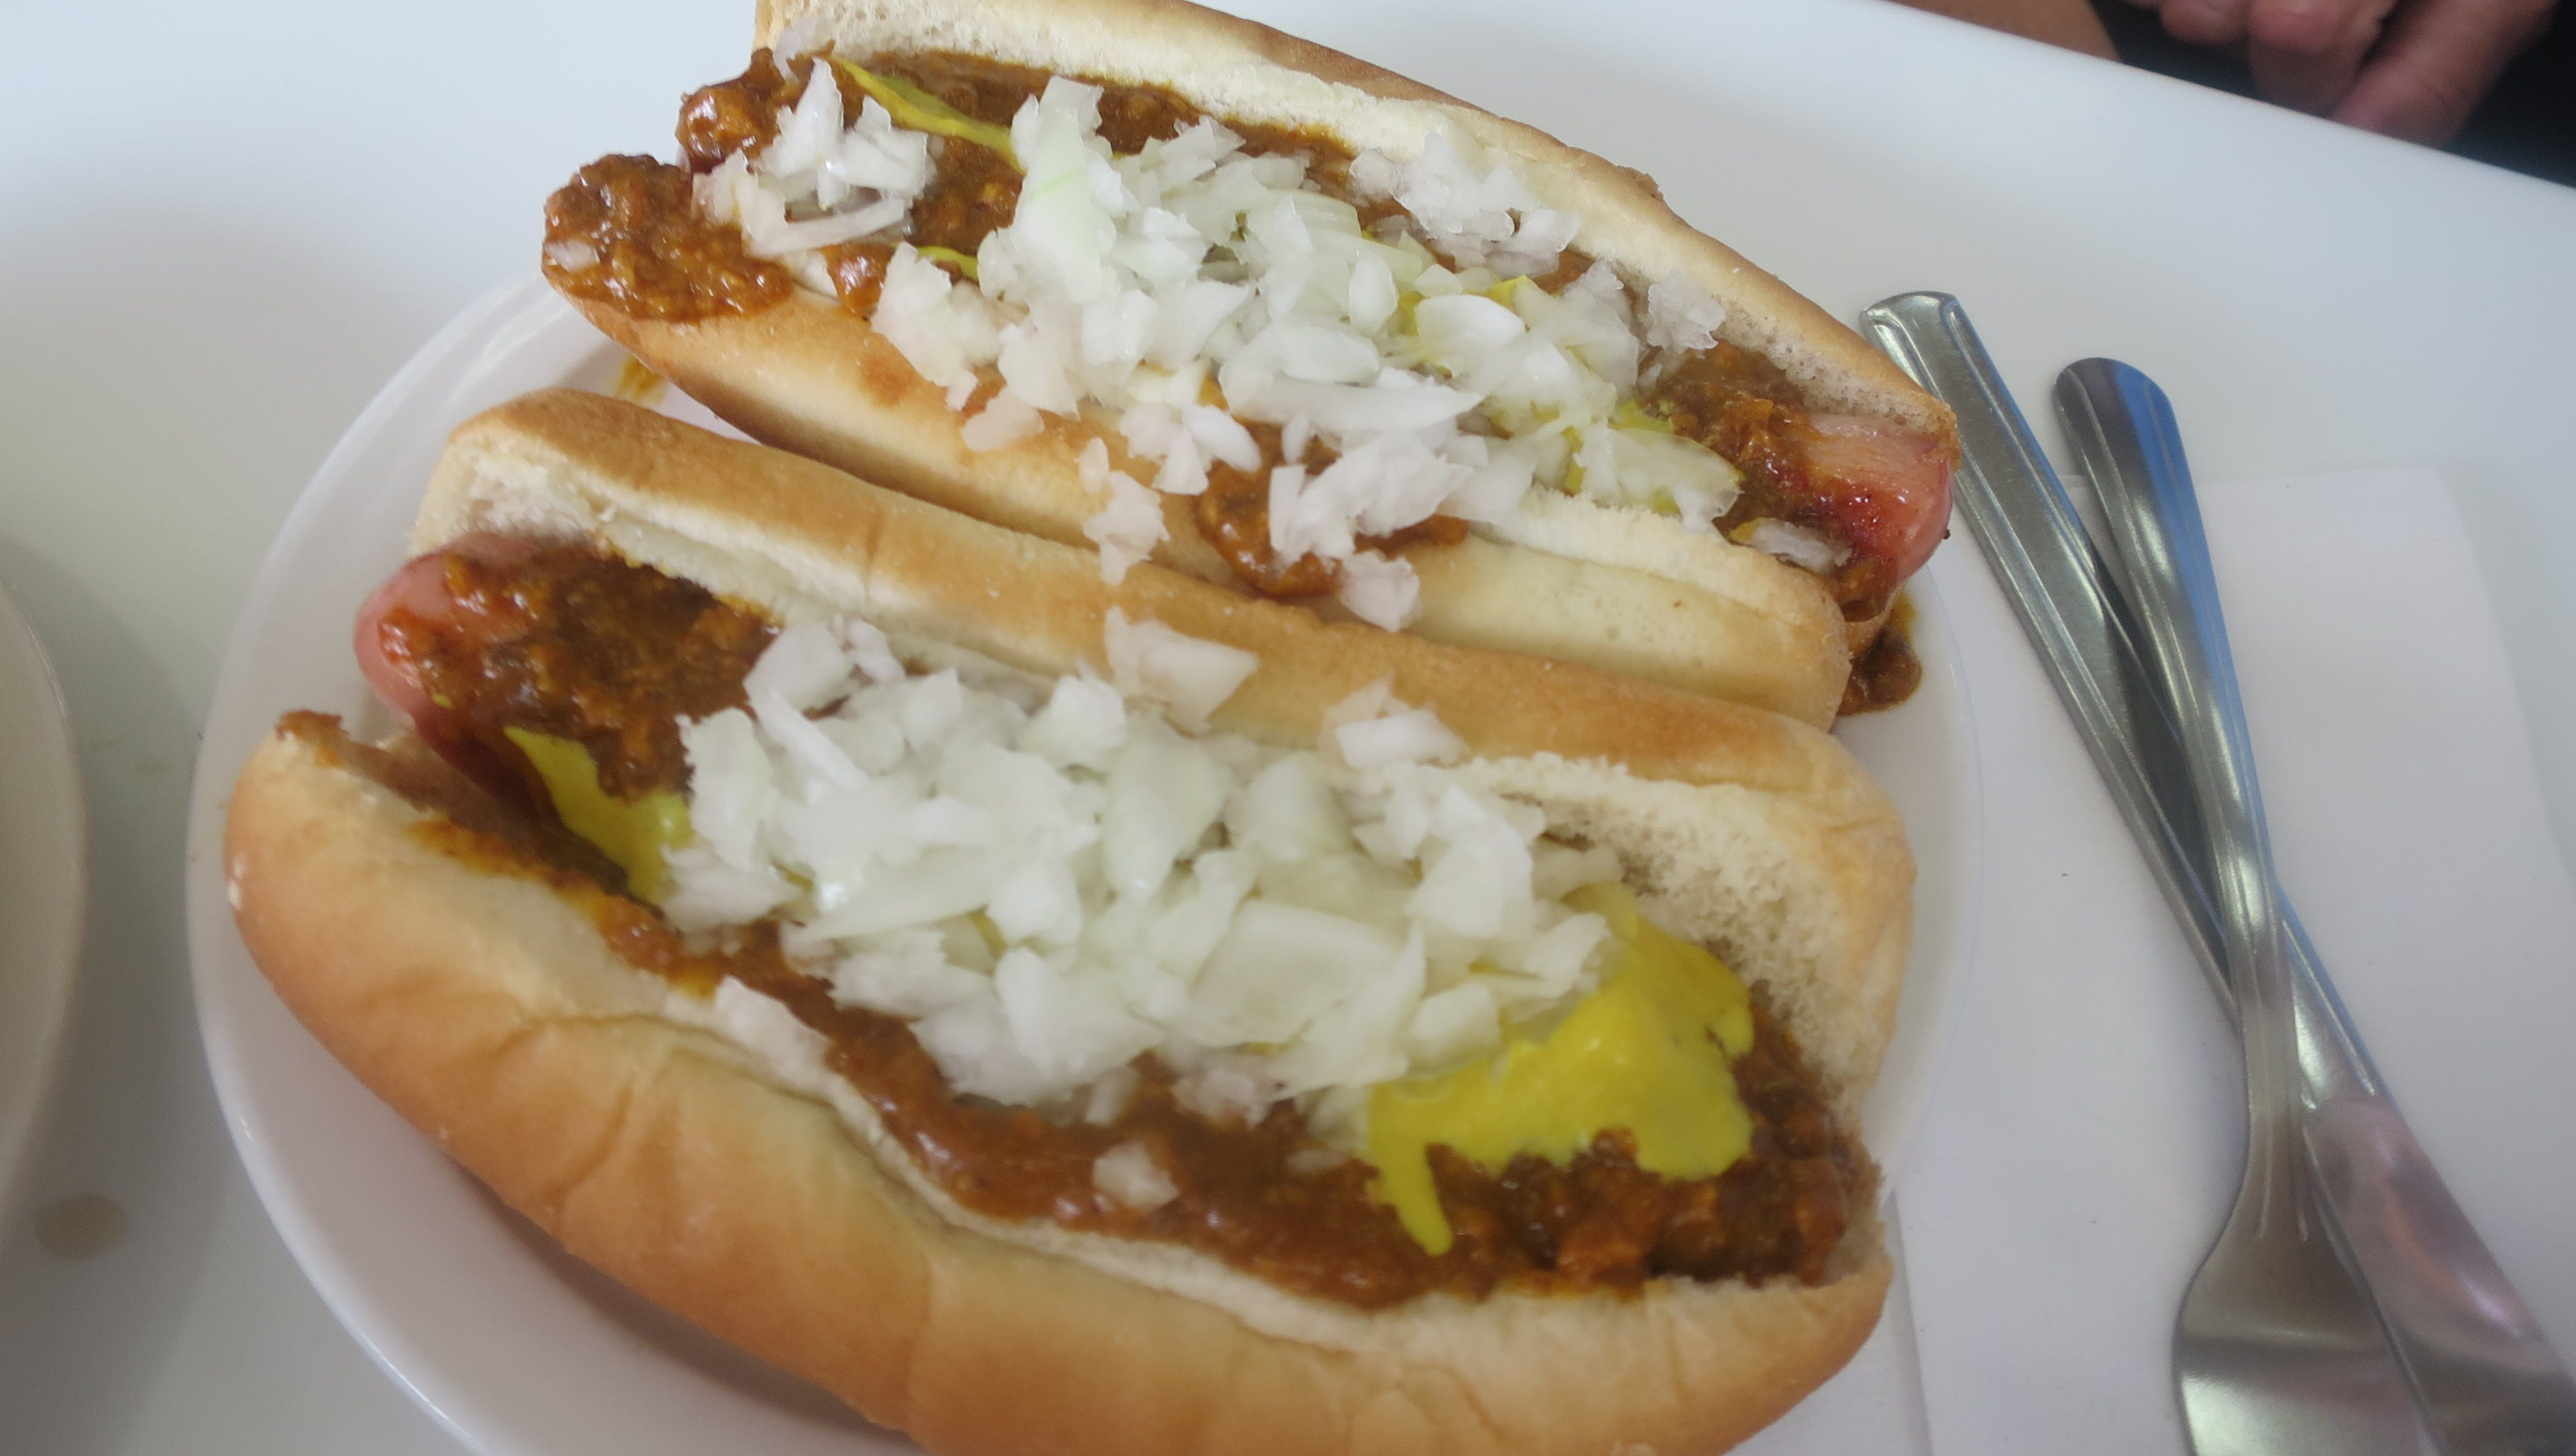 Detroit S Hot Dog Eatery Is A Piece Of American History